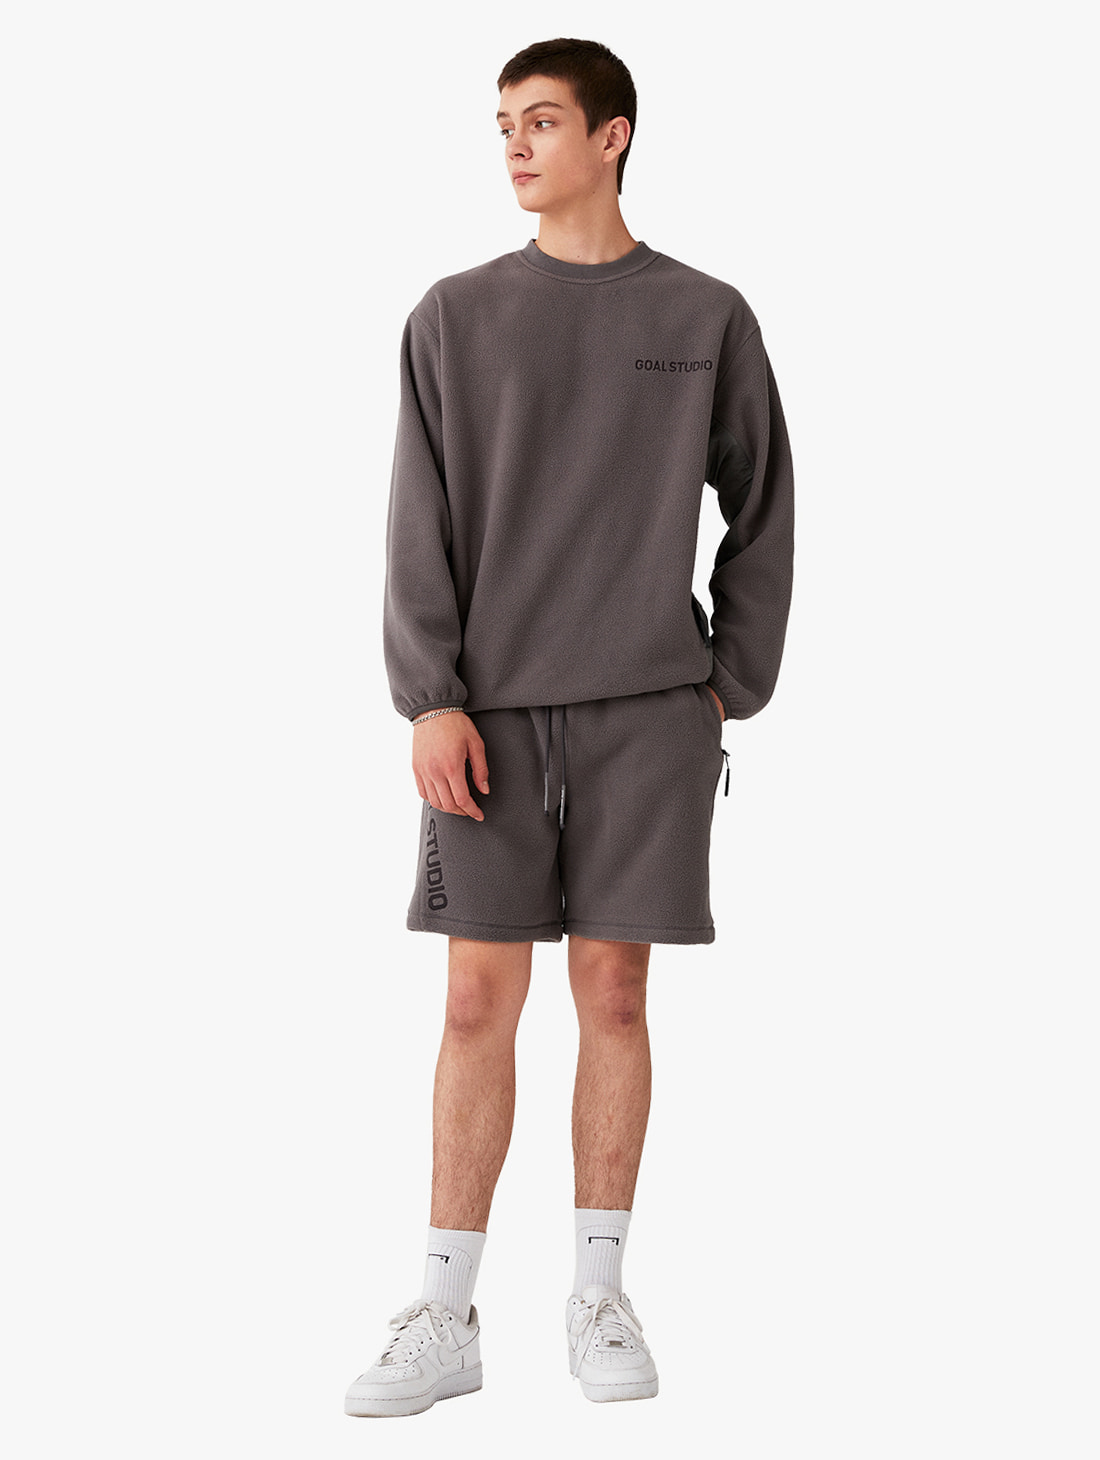 GOALSTUDIO [10% OFF] NYLON METAL MIXED FLEECE SWEATSHIRTS & SHORTS SET